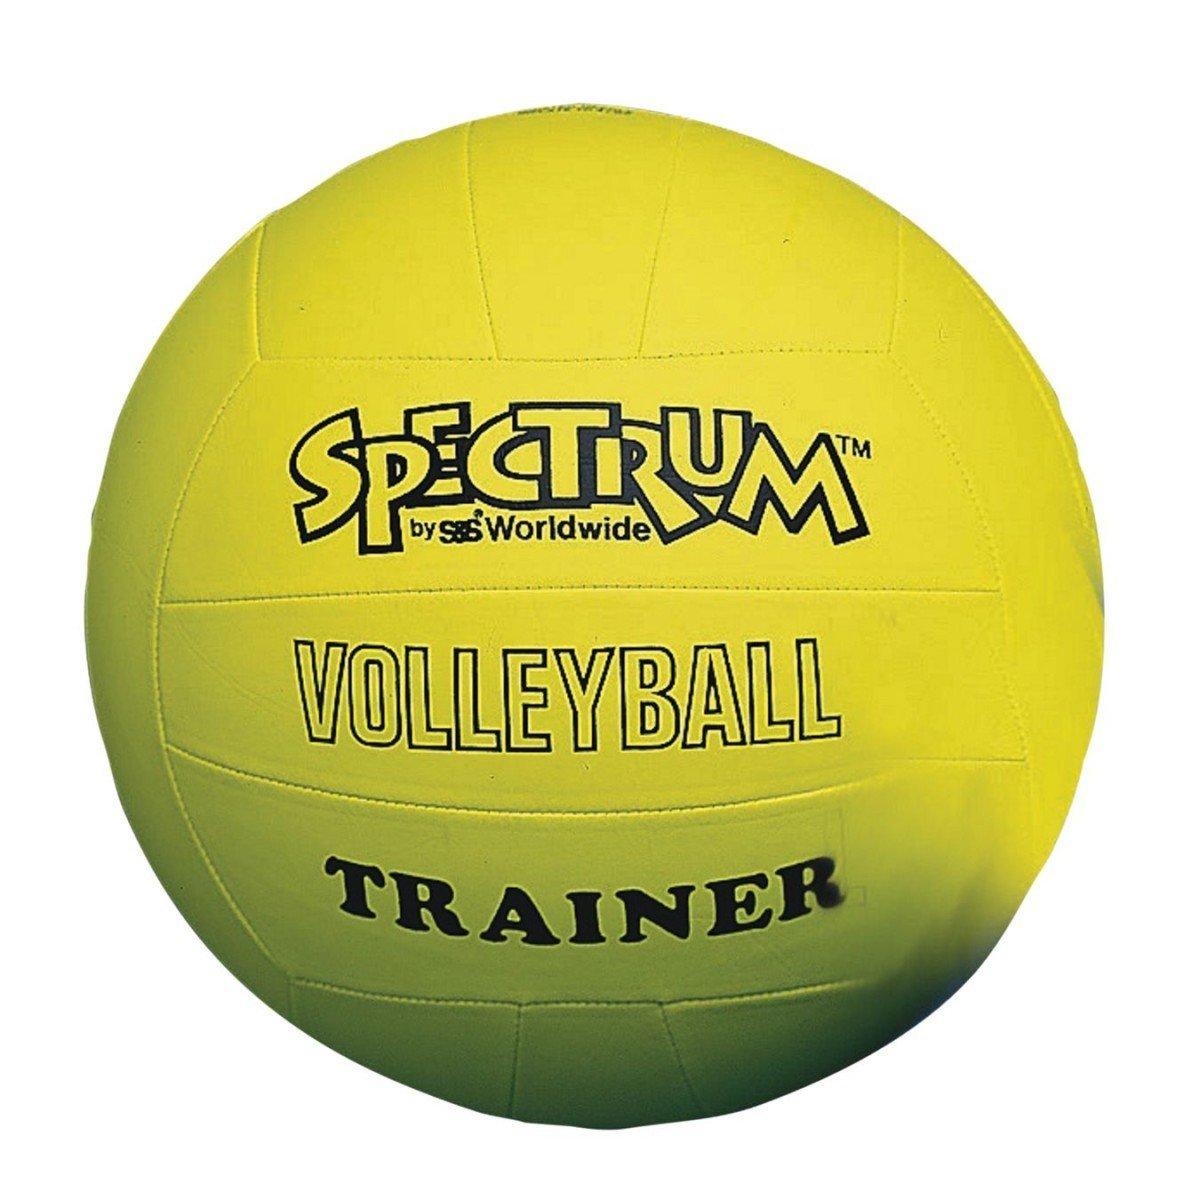 S&S Worldwide W6521 Spectrum Volleyball Trainer, Yellow - Regular Size, Our extra light ball is perfect for training young volleyball players By SS Worldwide